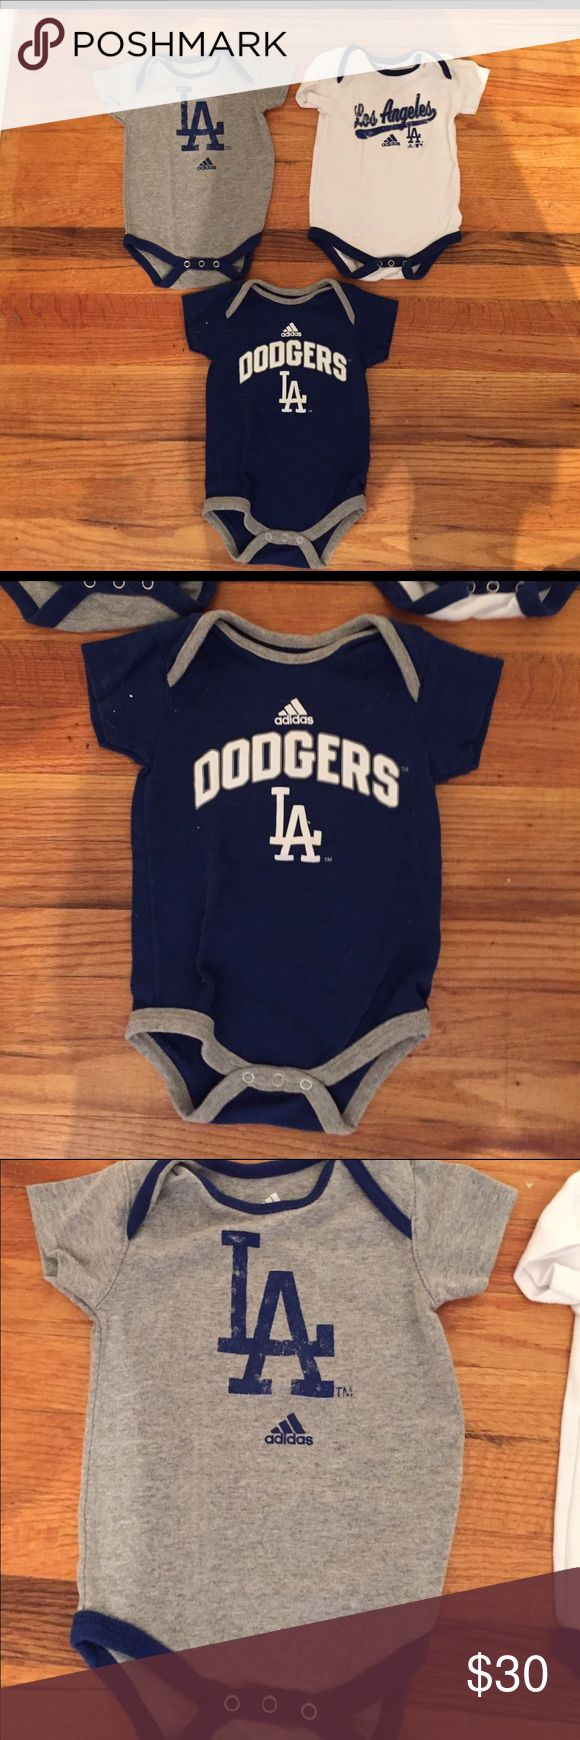 Adidas official dodger 12 month onesie! Adidas official dodger 12 month onesie! I am selling them as a set of 3. They all came together so it's $30 for all 3!! $10 each is an amazing deal! Bought at dodger stadium Adidas One Pieces Bodysuits